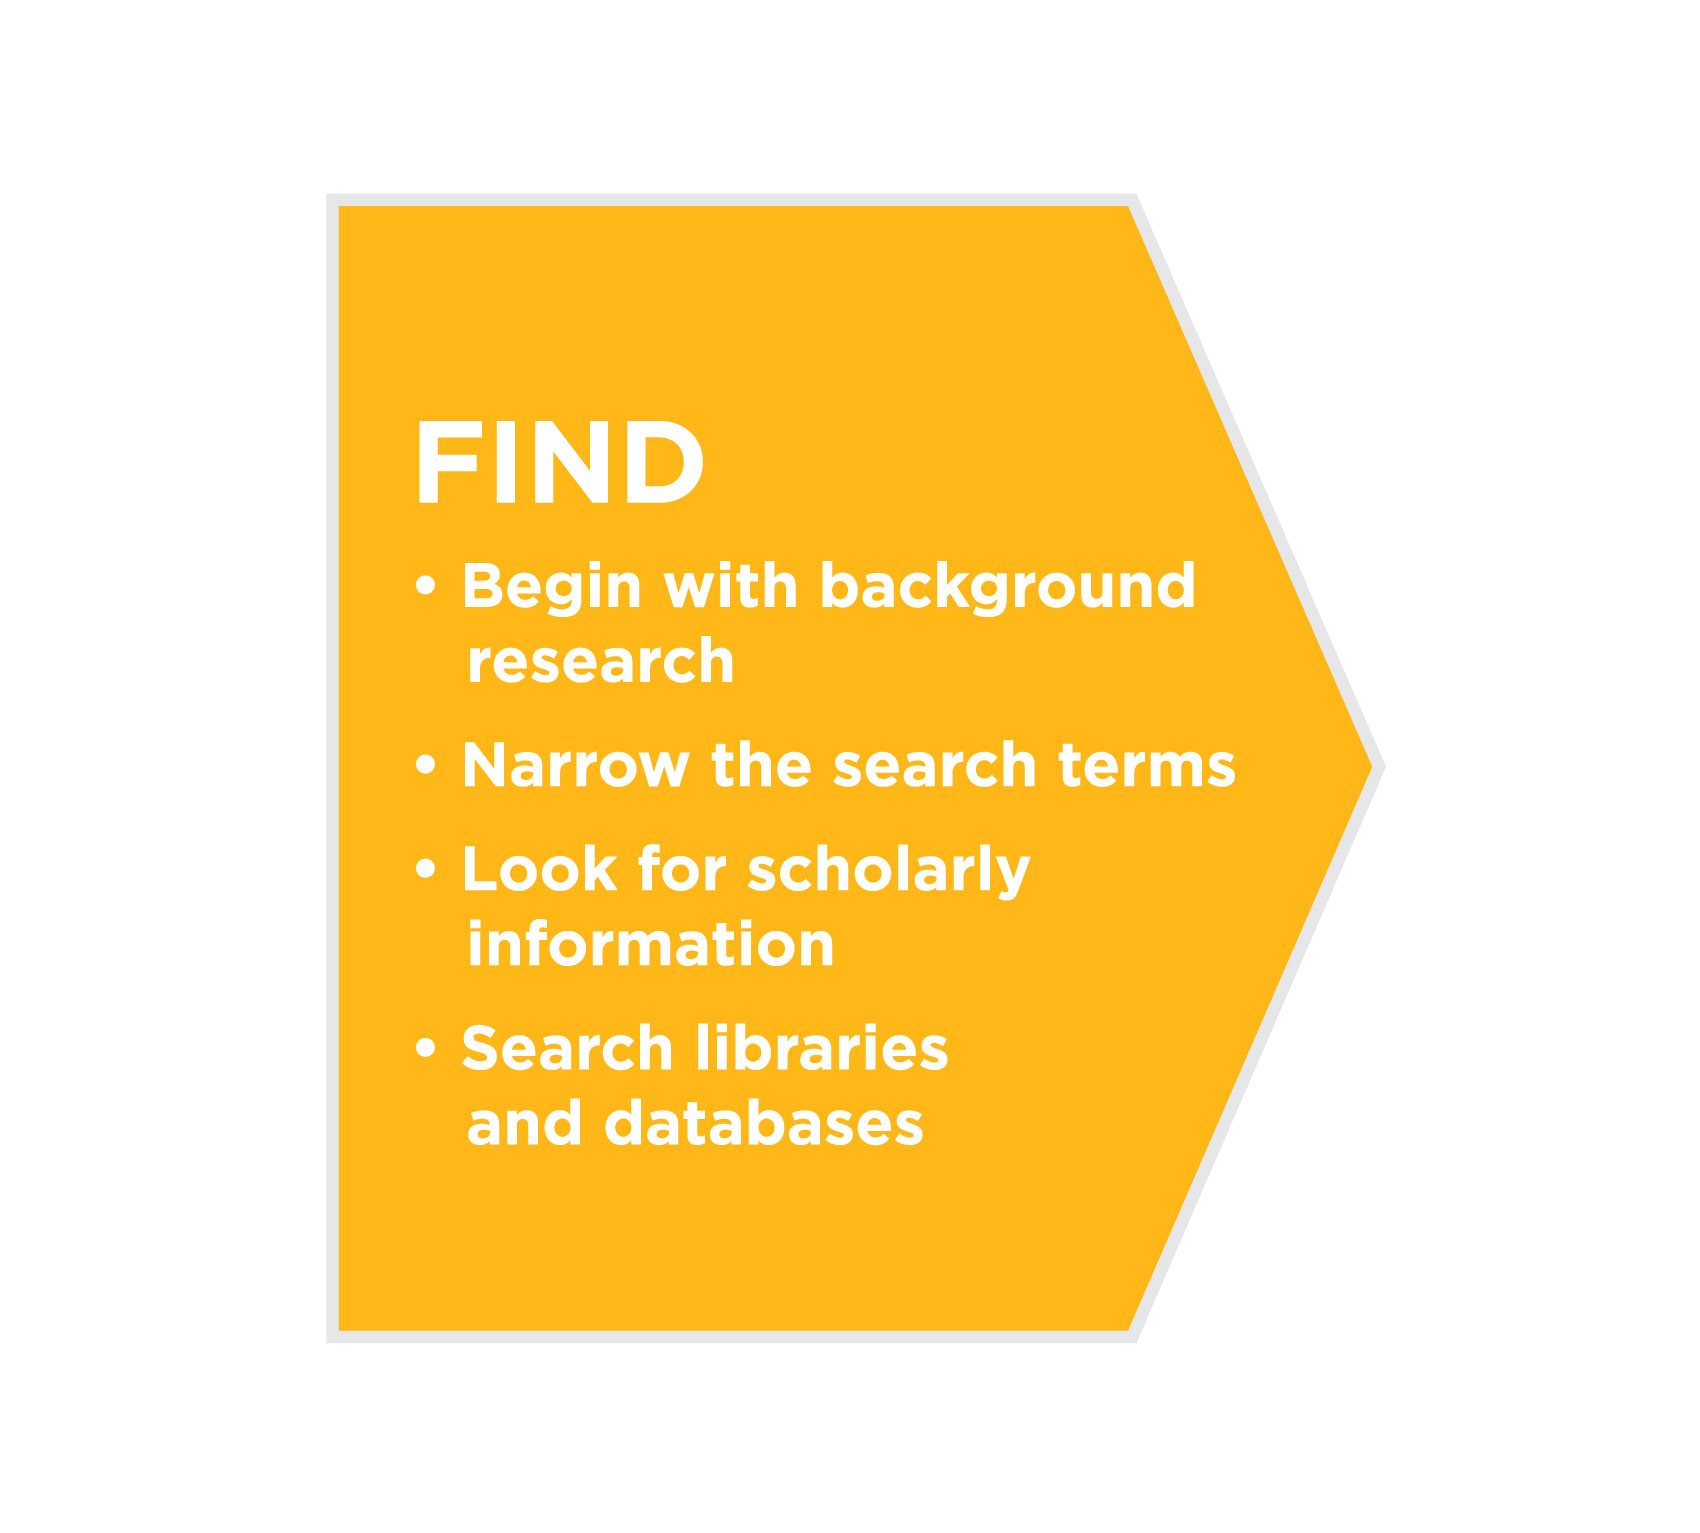 Tips for finding sources: begin with background research, narrow the search terms, look for scholarly information, and search libraries and databases.